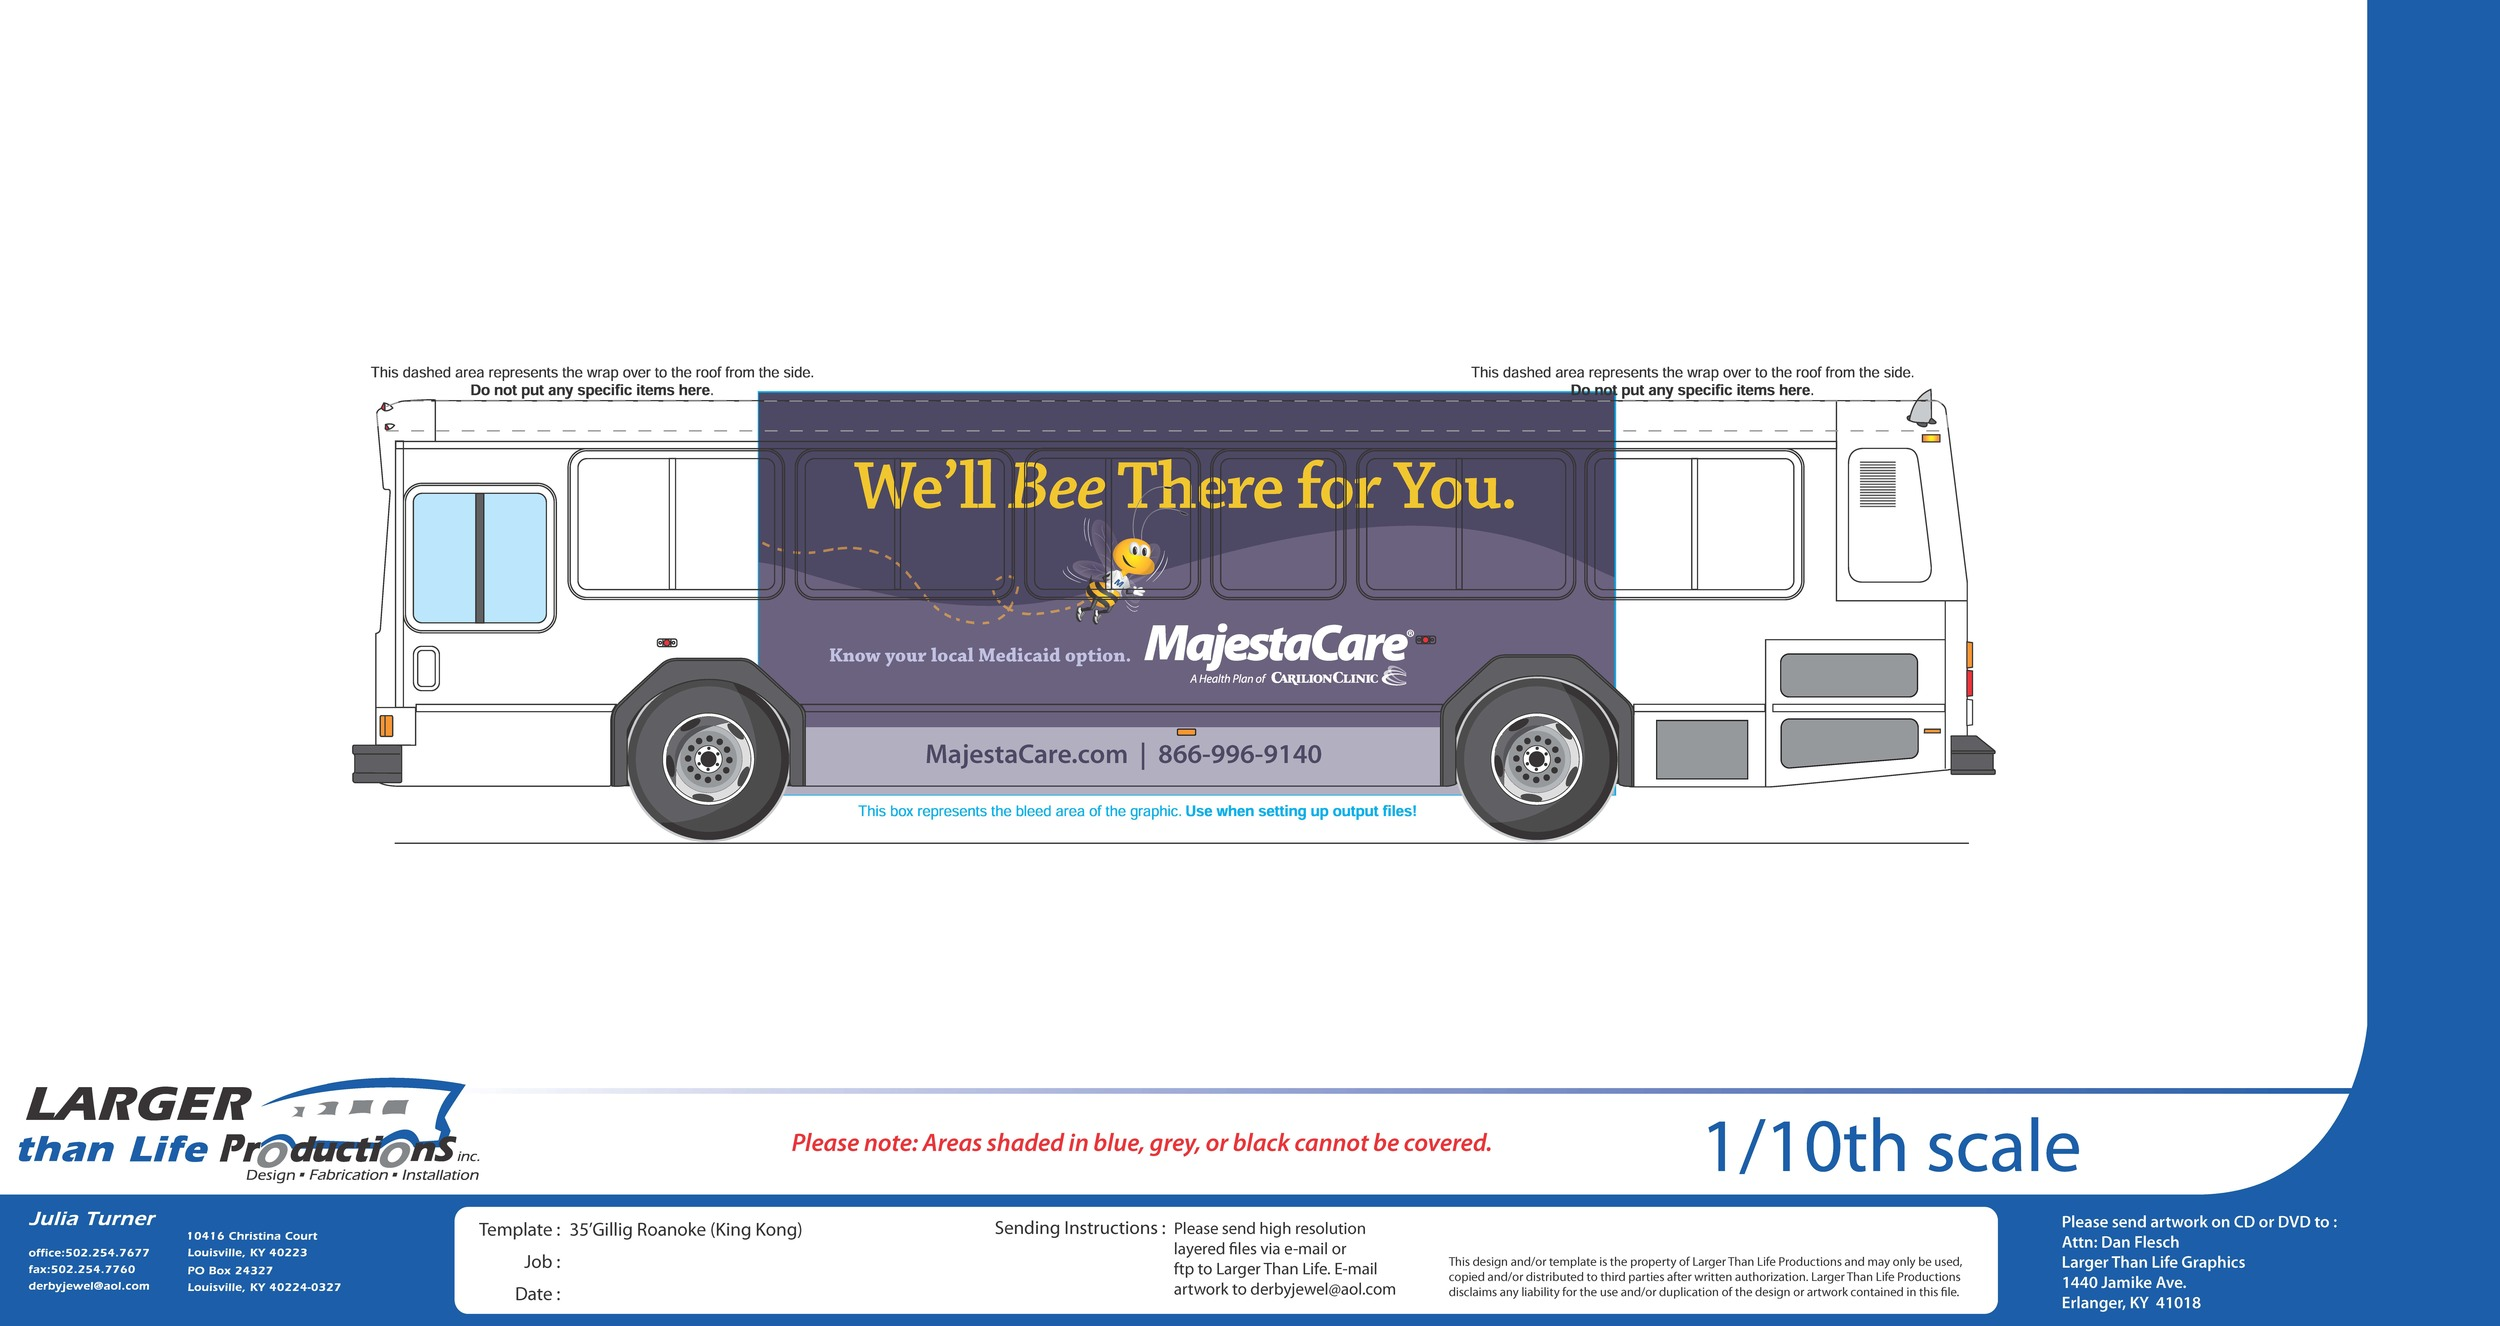 J1842_01 MajestaCare Enrollment 2013_king kong bus_Bee There Purple.jpg